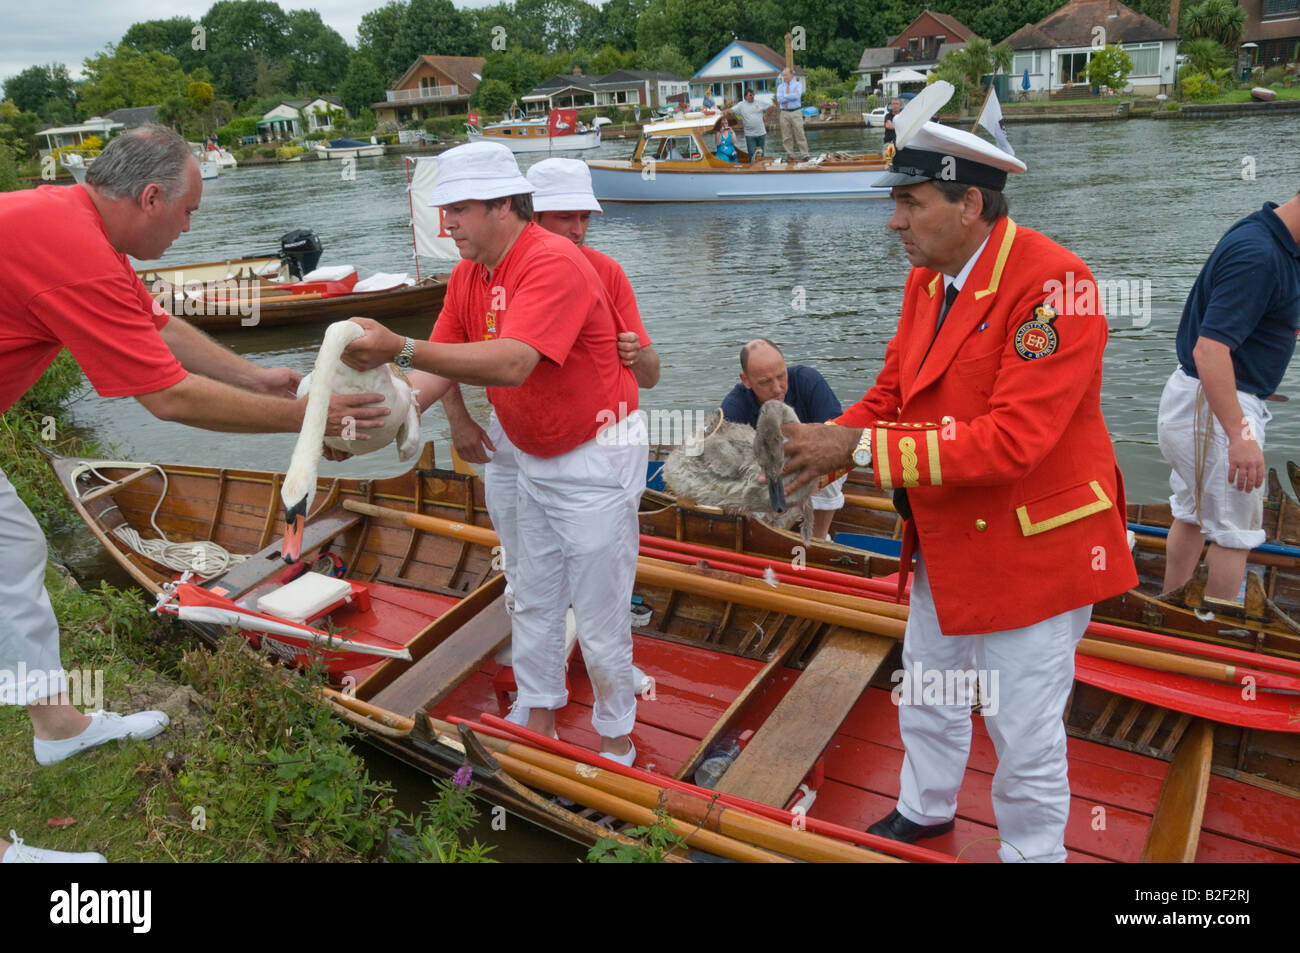 The Queen's Swan Marker  and uppers hand swans over to those on the riverbank - Stock Image